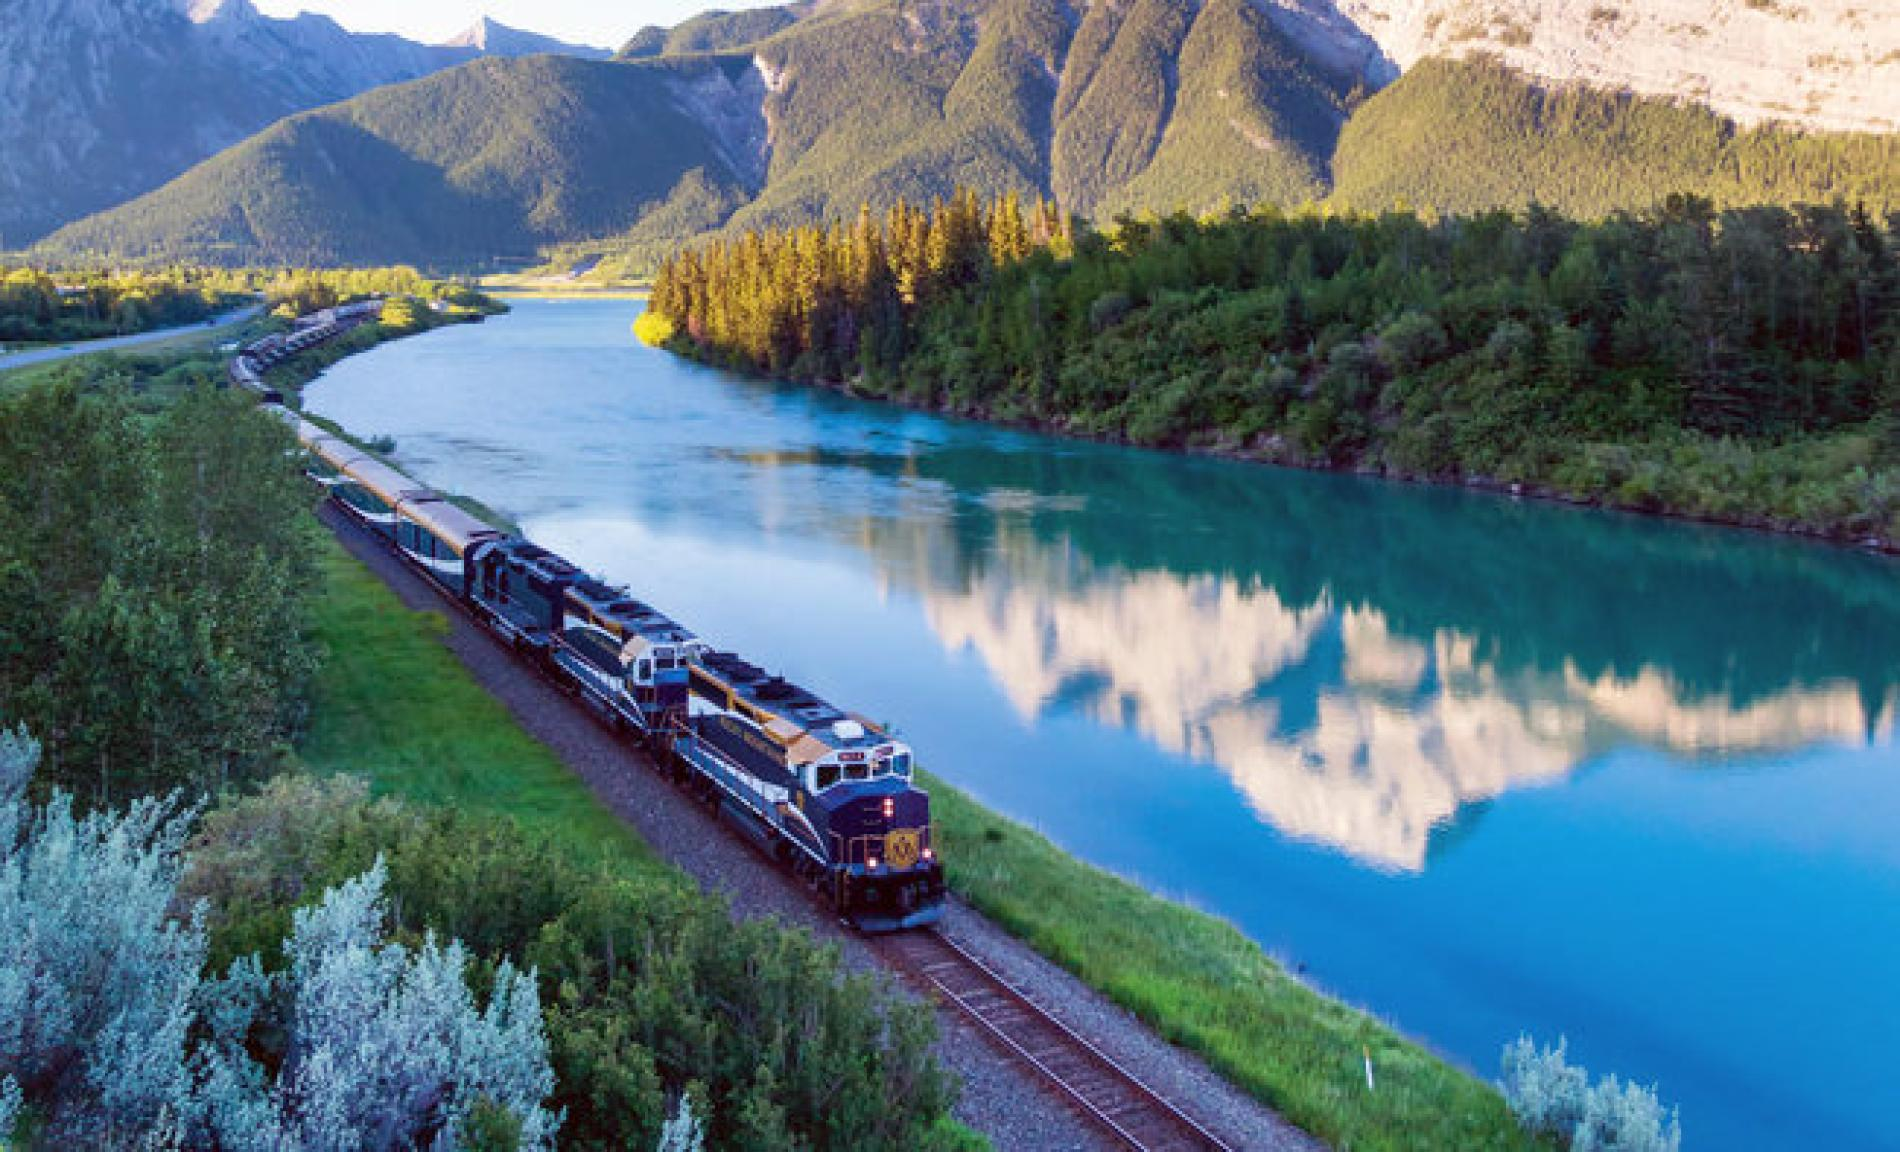 Travel through the Canadian Rockies by rail with the Rhode Island PBS Travel Club